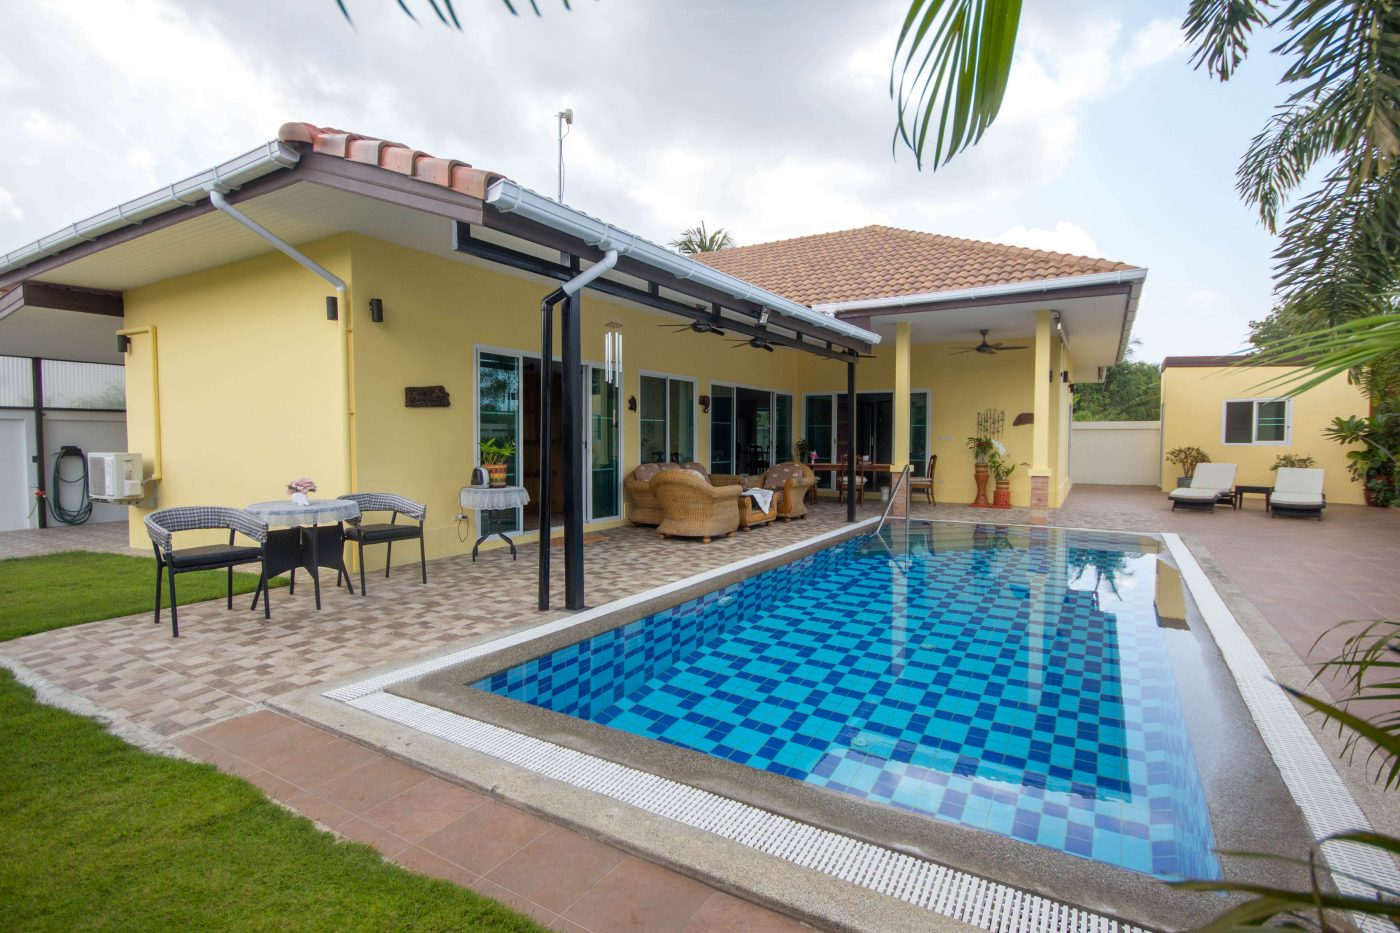 Luxury 3 bedroom pool villa for sale